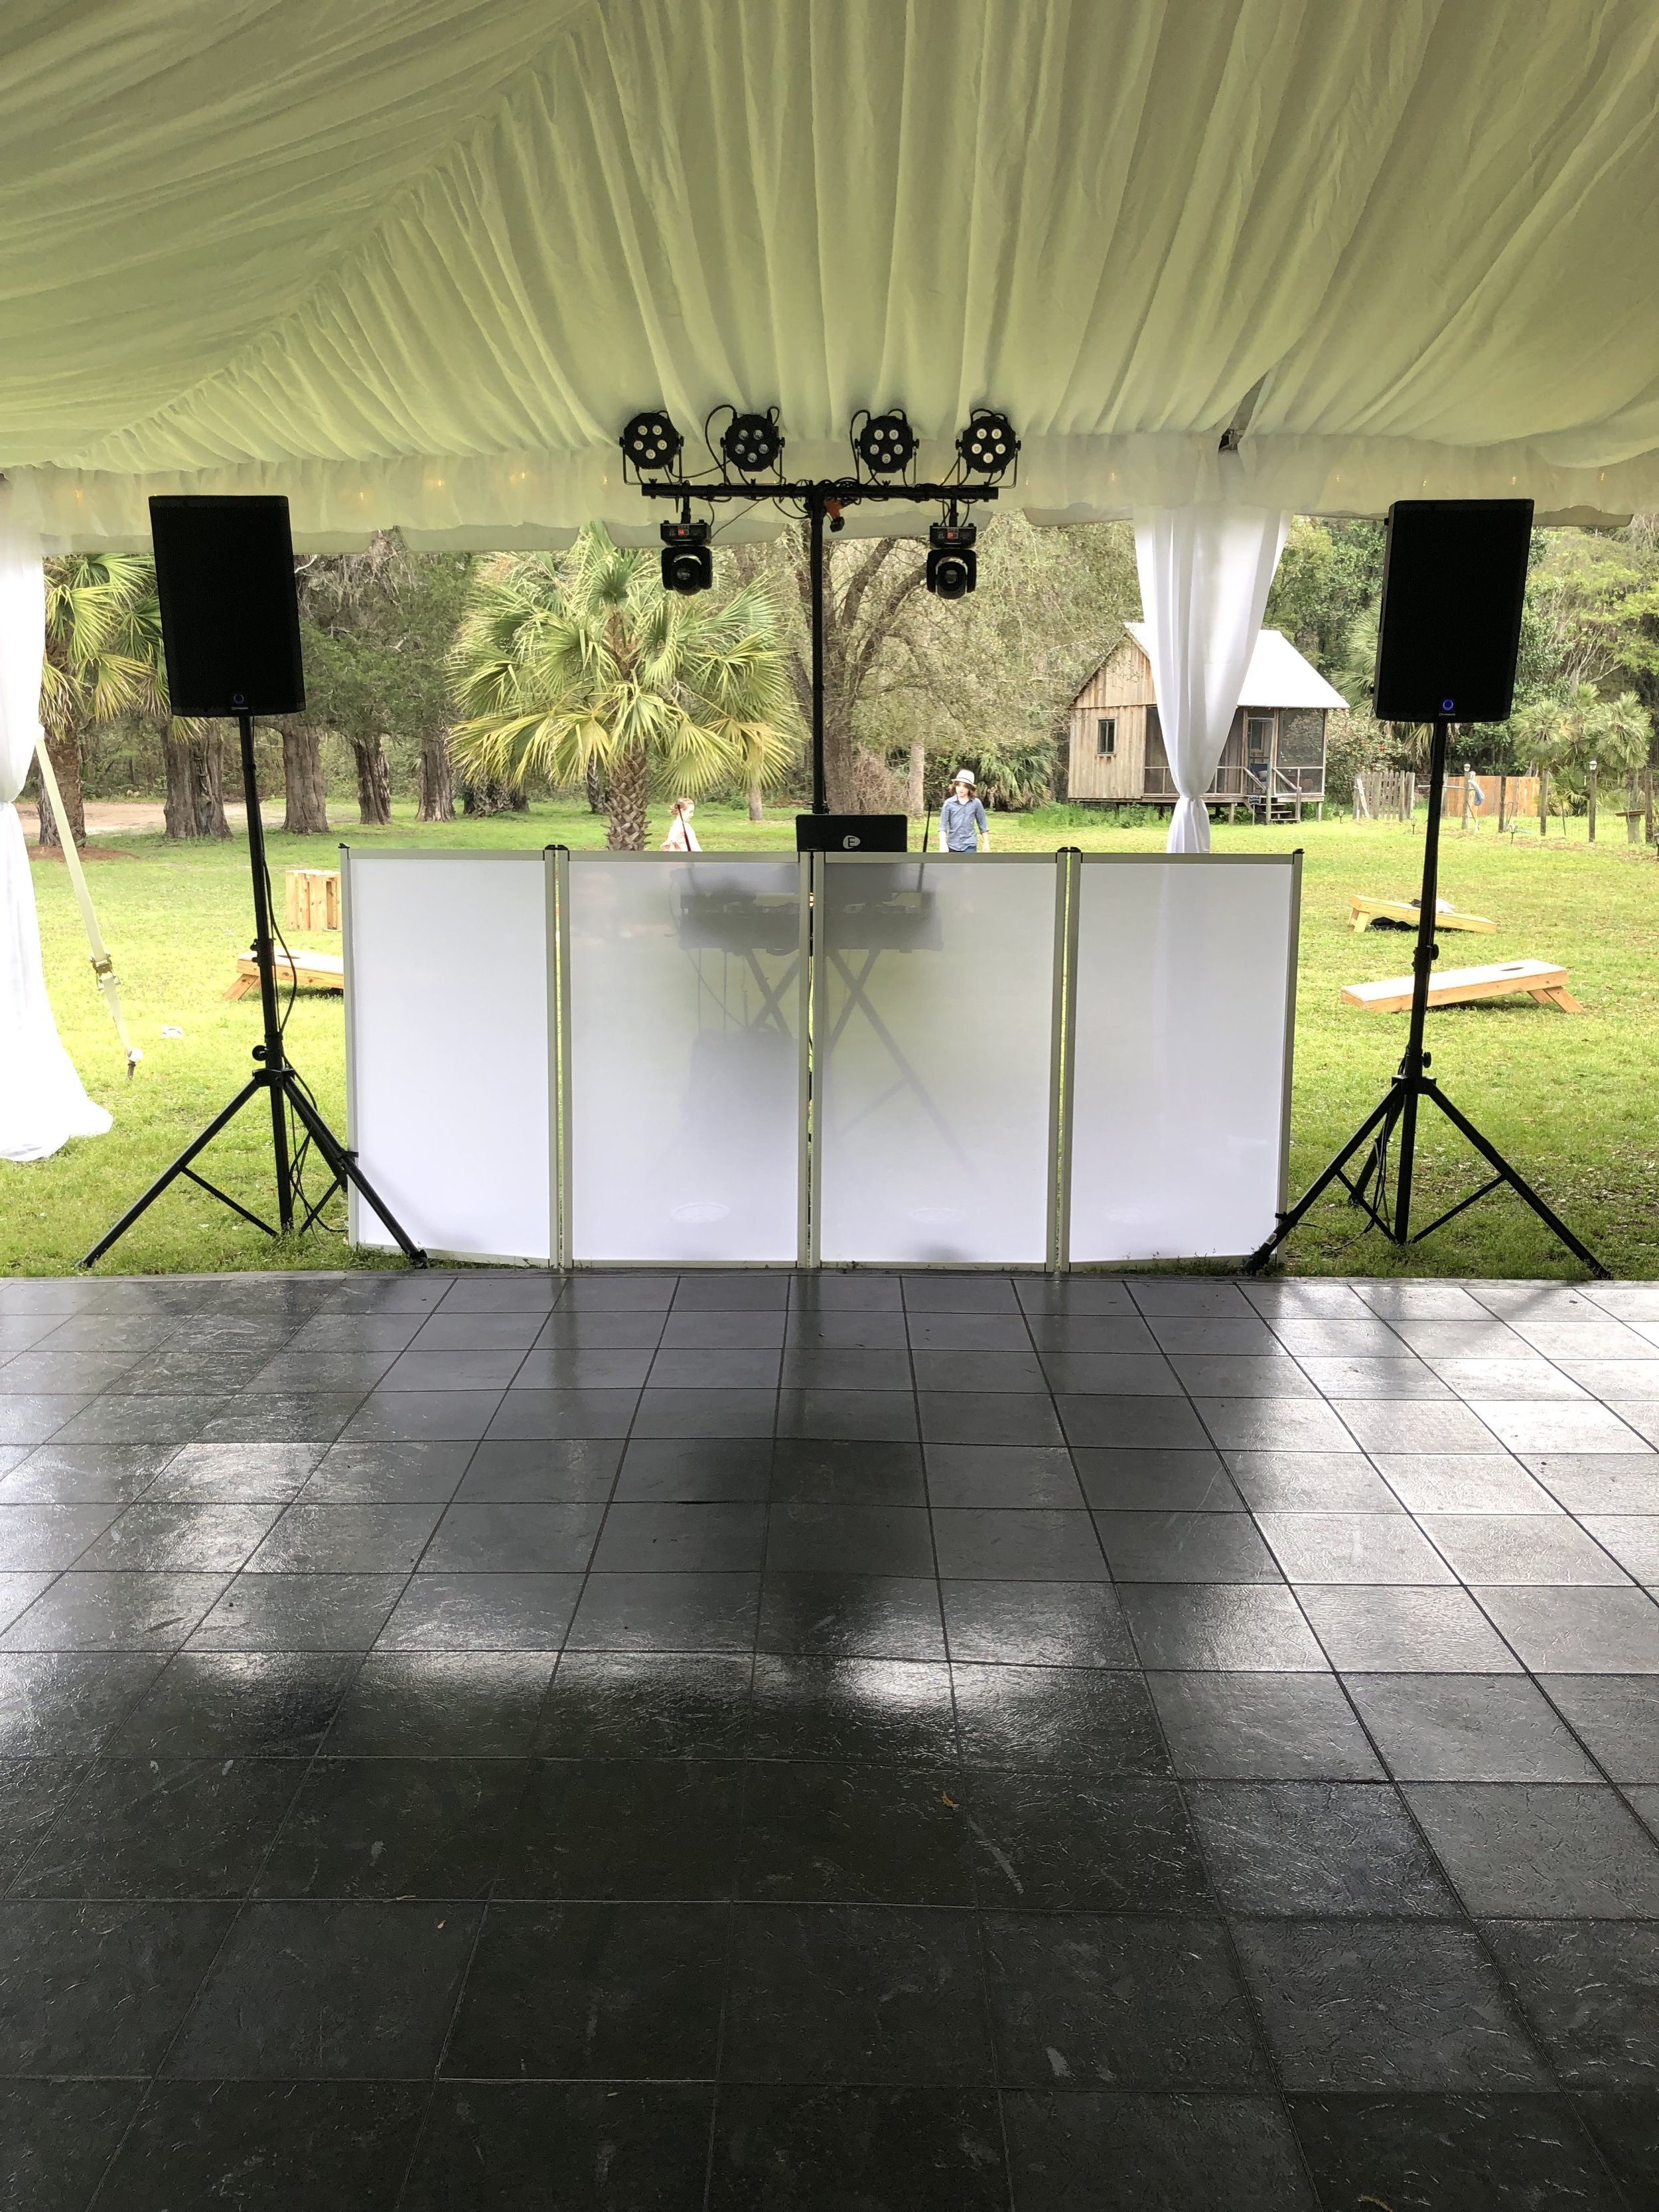 Our Reception package includes 4 hours of music and introductions with wireless microphone and a intelligent dance floor lighting package $675